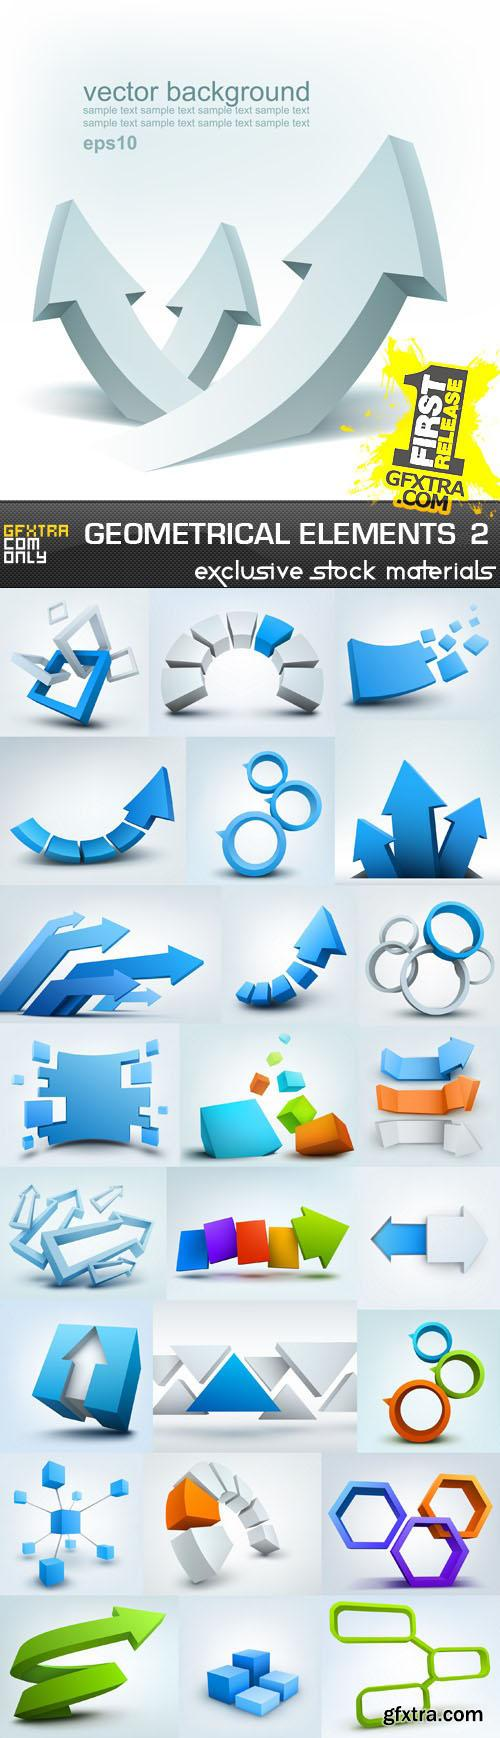 Collection of geometric design elements vol.2